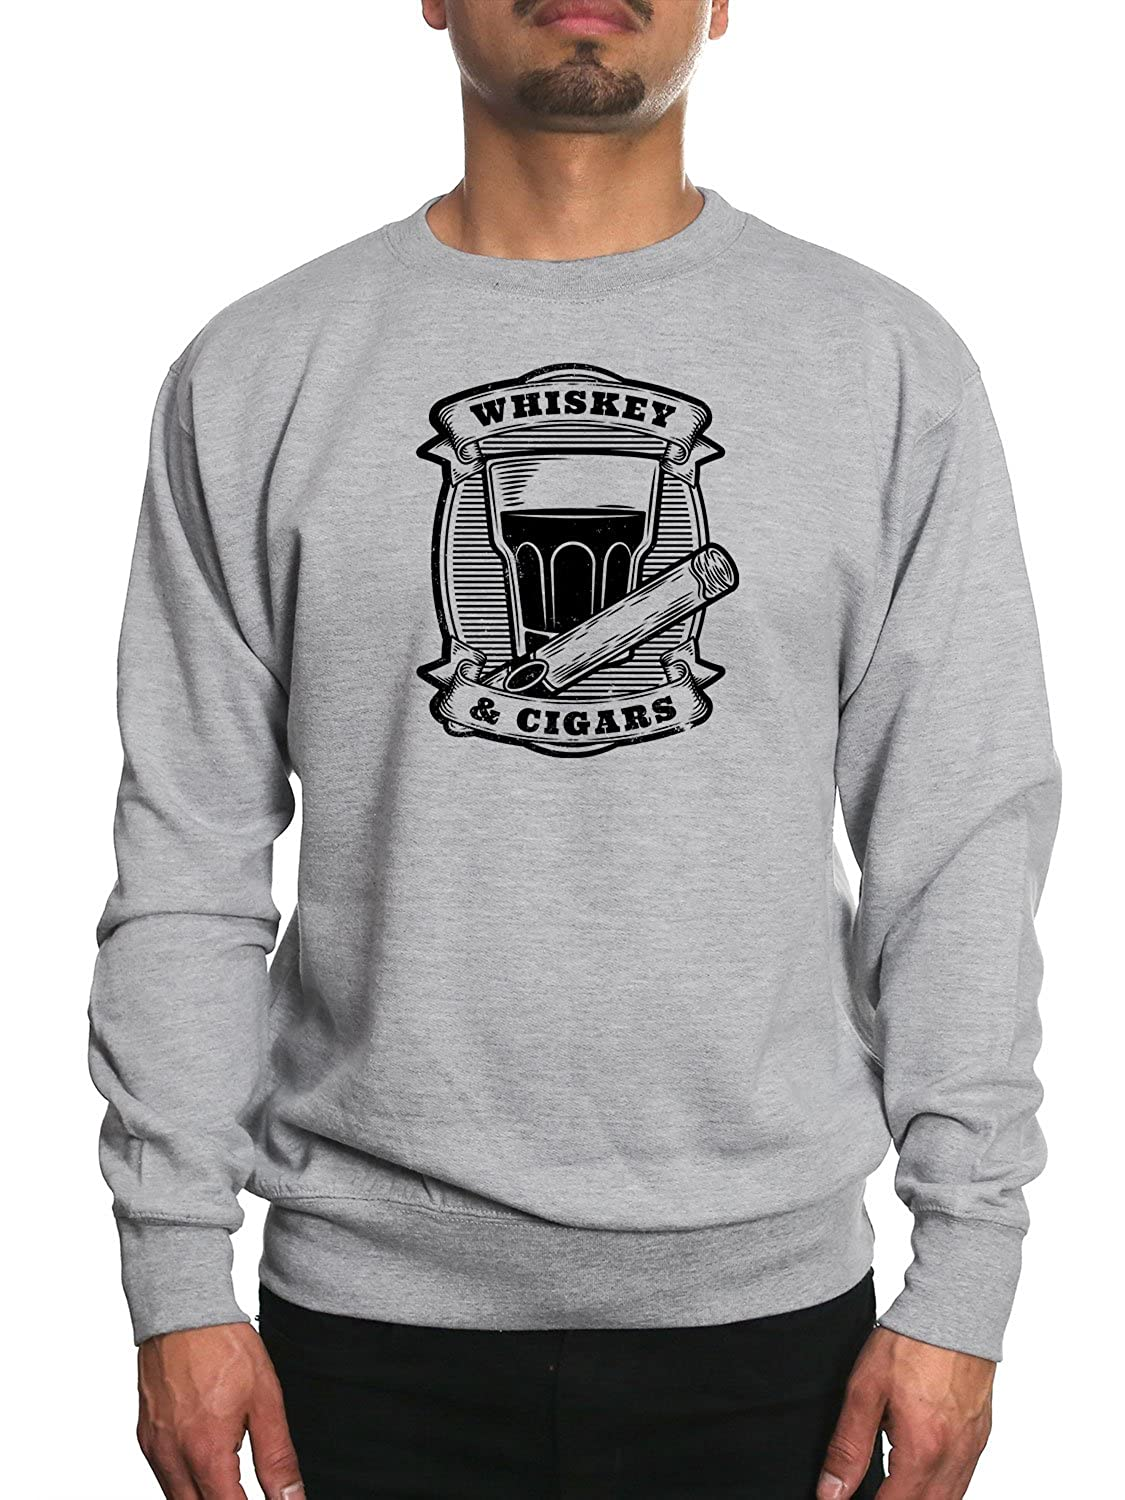 Young Motto Men's WHISKEY & CIGARS Sweatshirt 16364127-SW